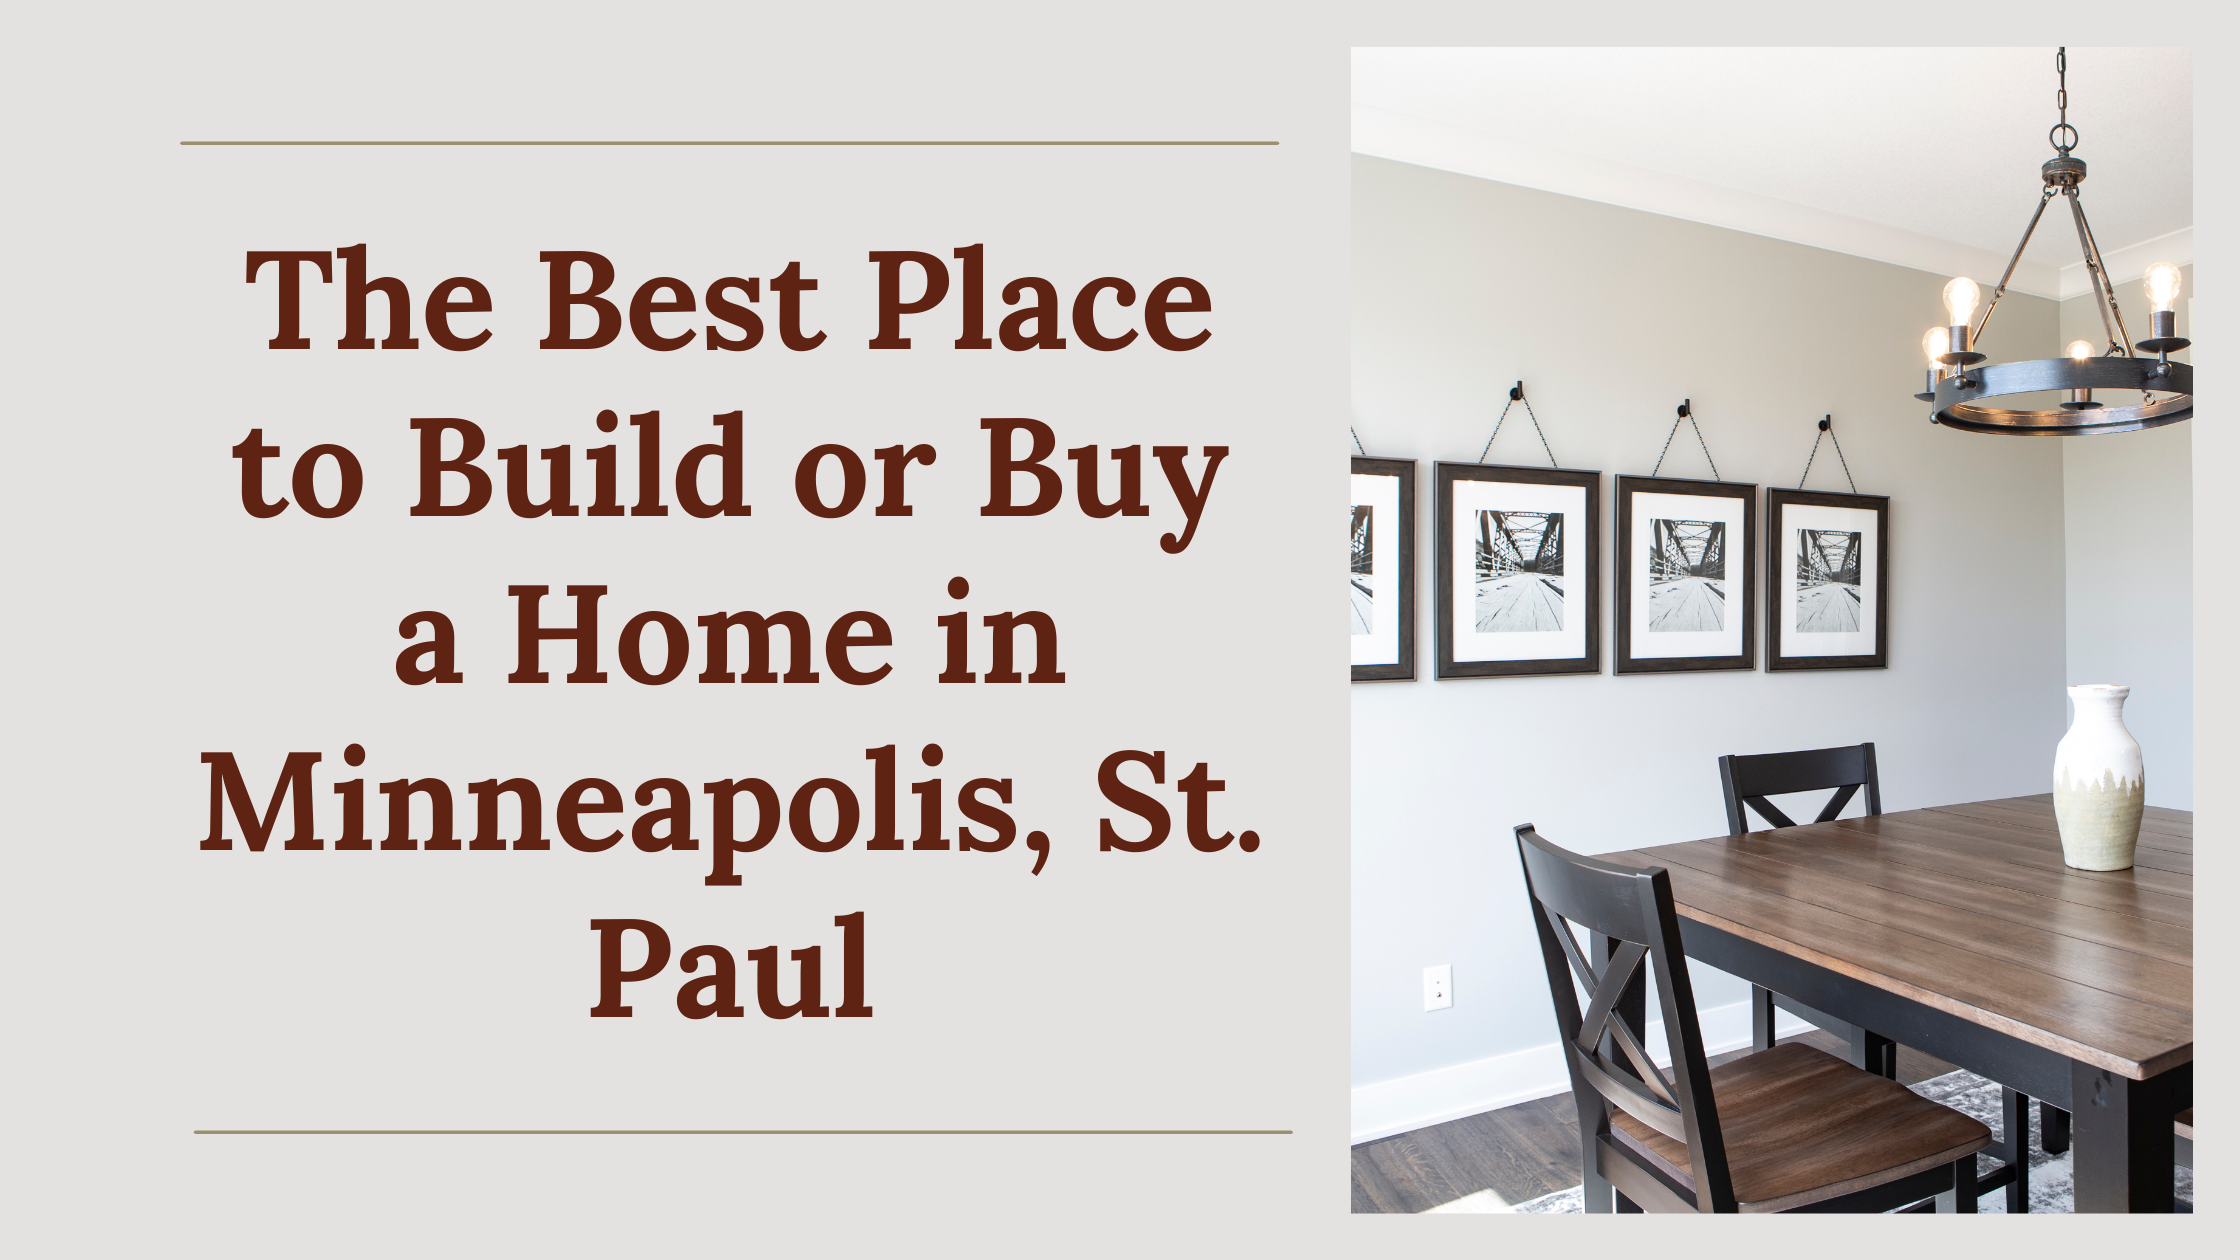 The Best Place to Build or Buy a Home in Minneapolis, St. Paul